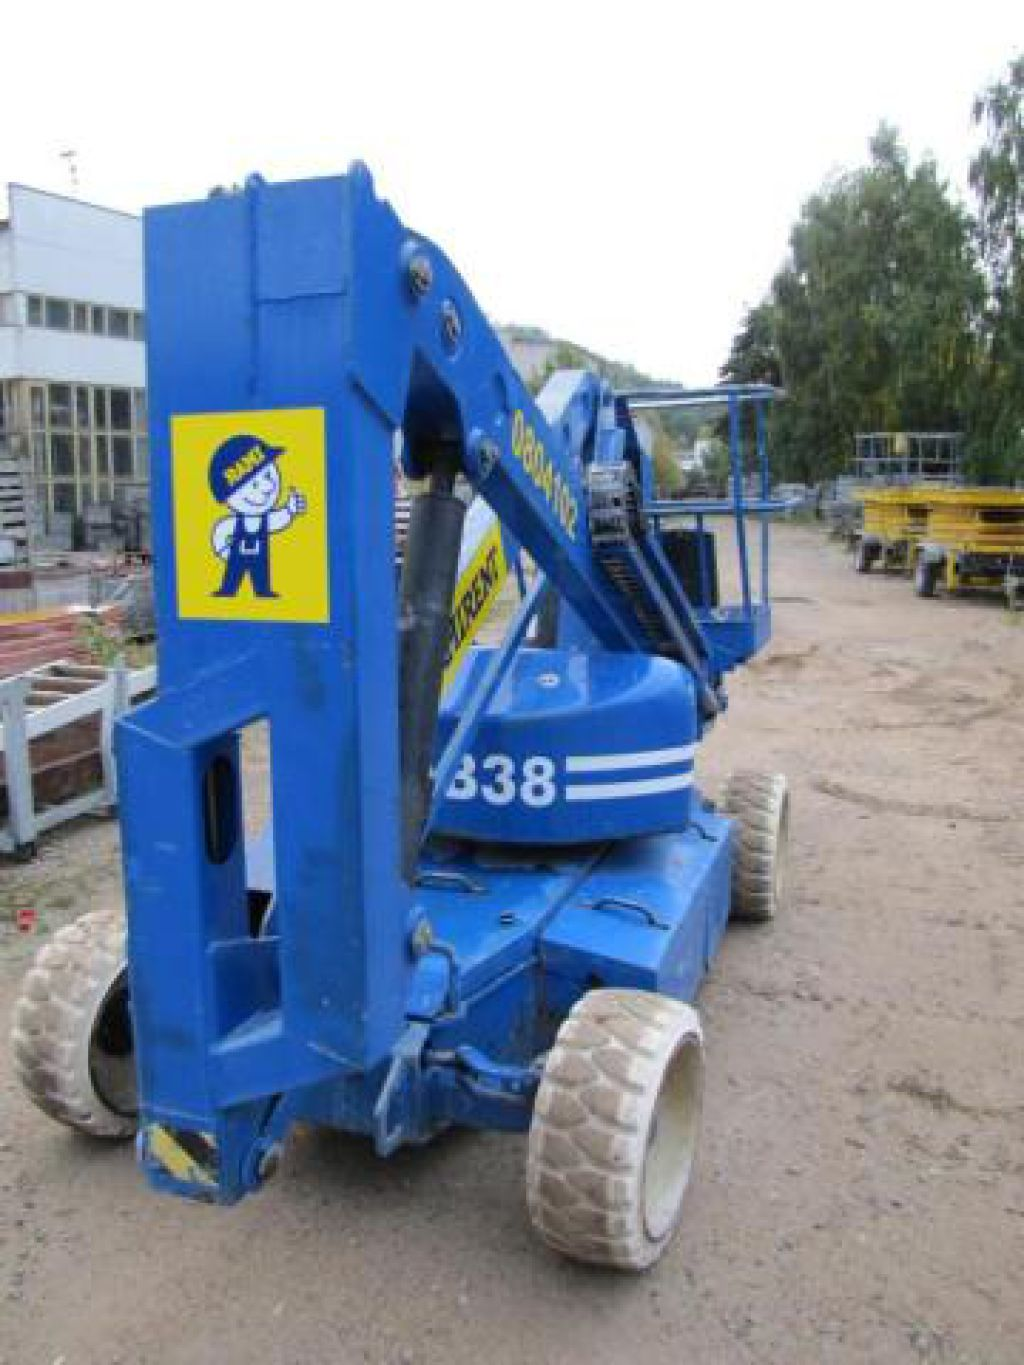 Battery_boom_lift_UpRight_AB38 battery boom lift upright ab38 for sale retrade offers used  at webbmarketing.co